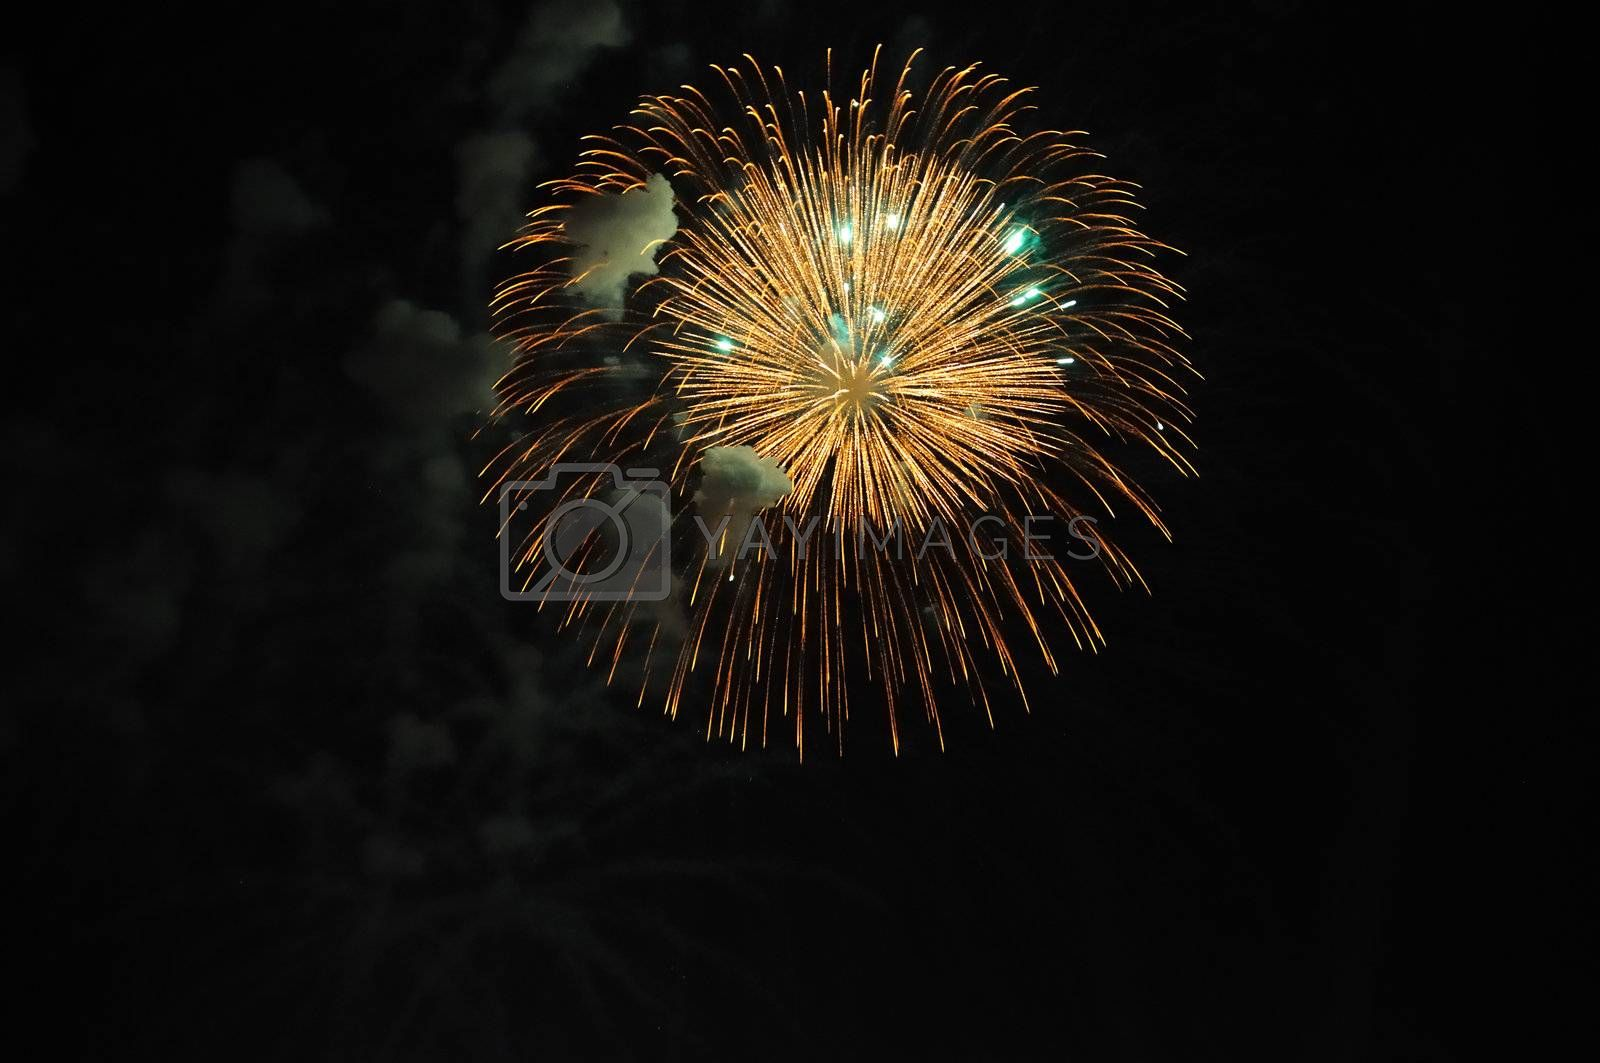 Celebration with fire works on the night sky